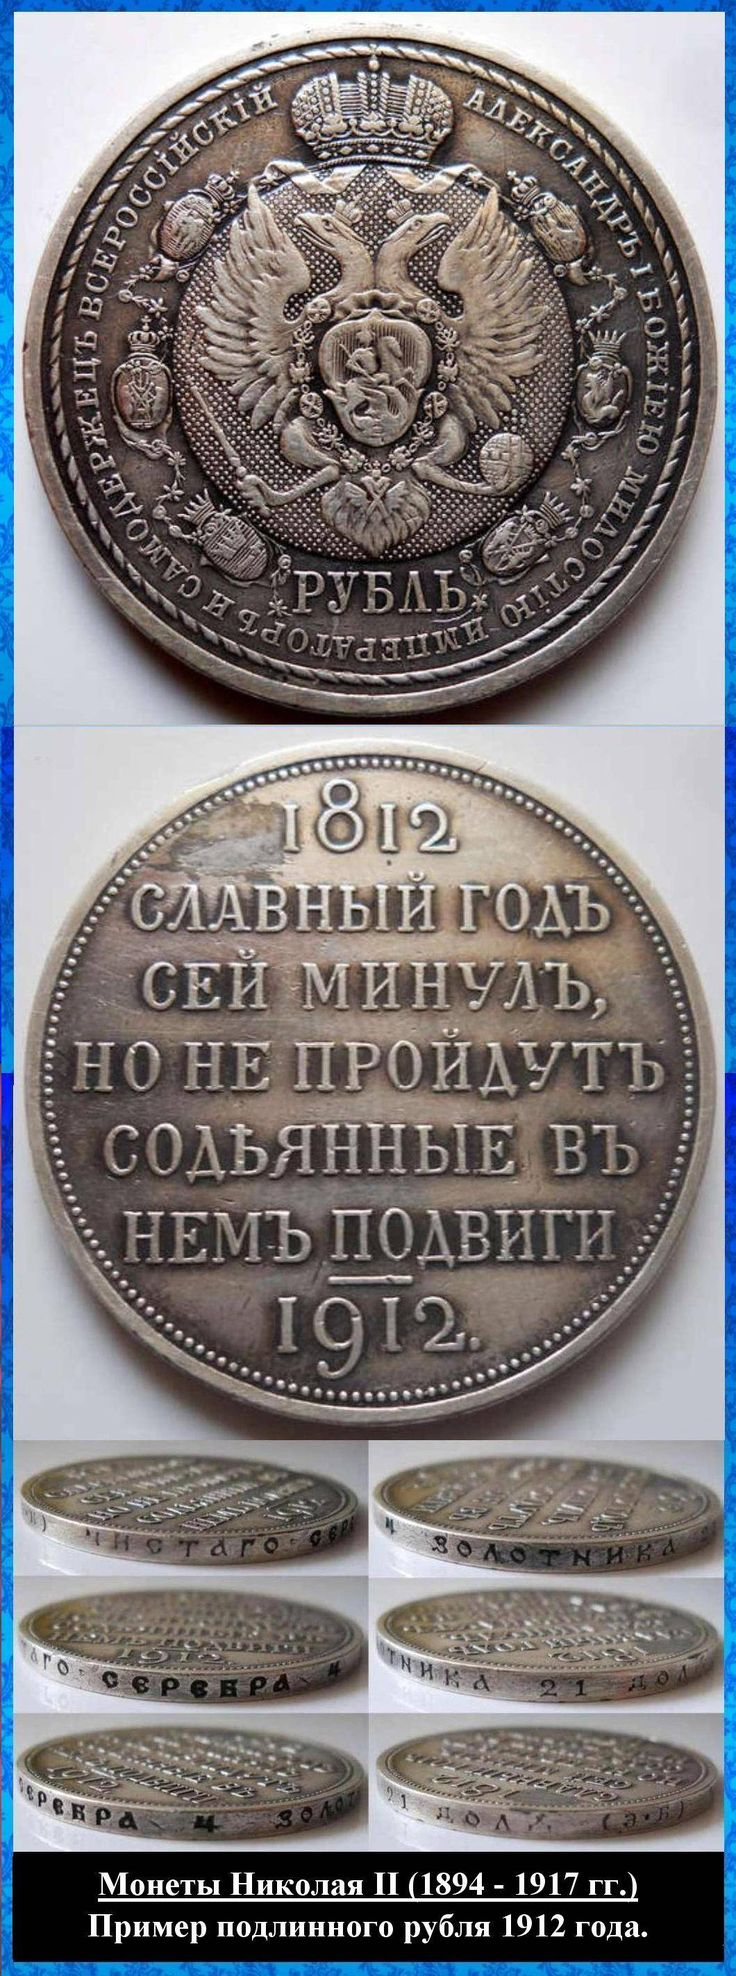 An example of authentic jubilee ruble in 1912.